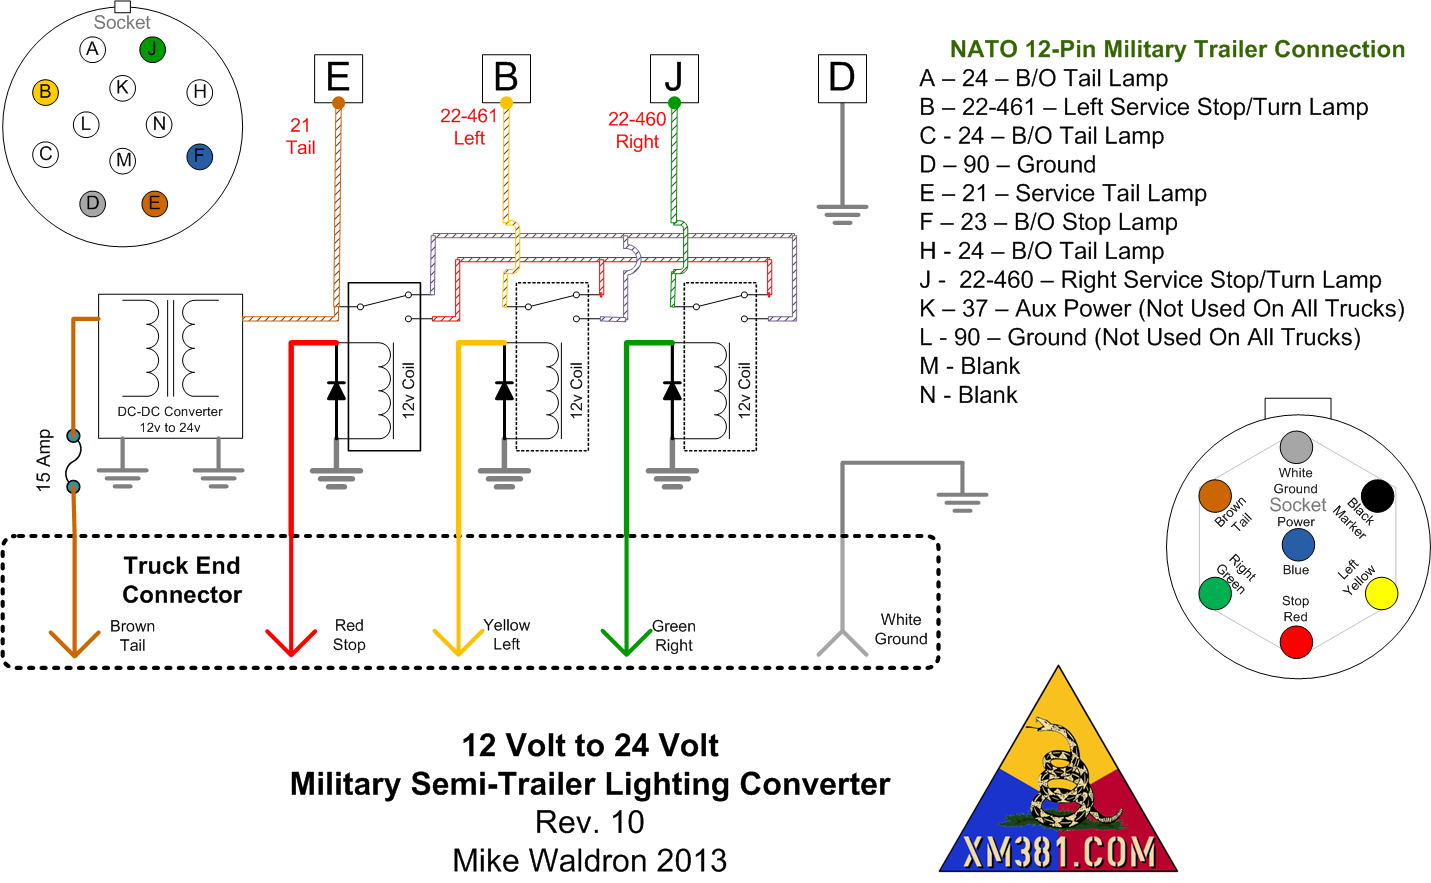 xm381 12 volt civllian truck to 24 volt military trailer lighting rh xm381 com 12V Battery 7 Pin Trailer Wiring